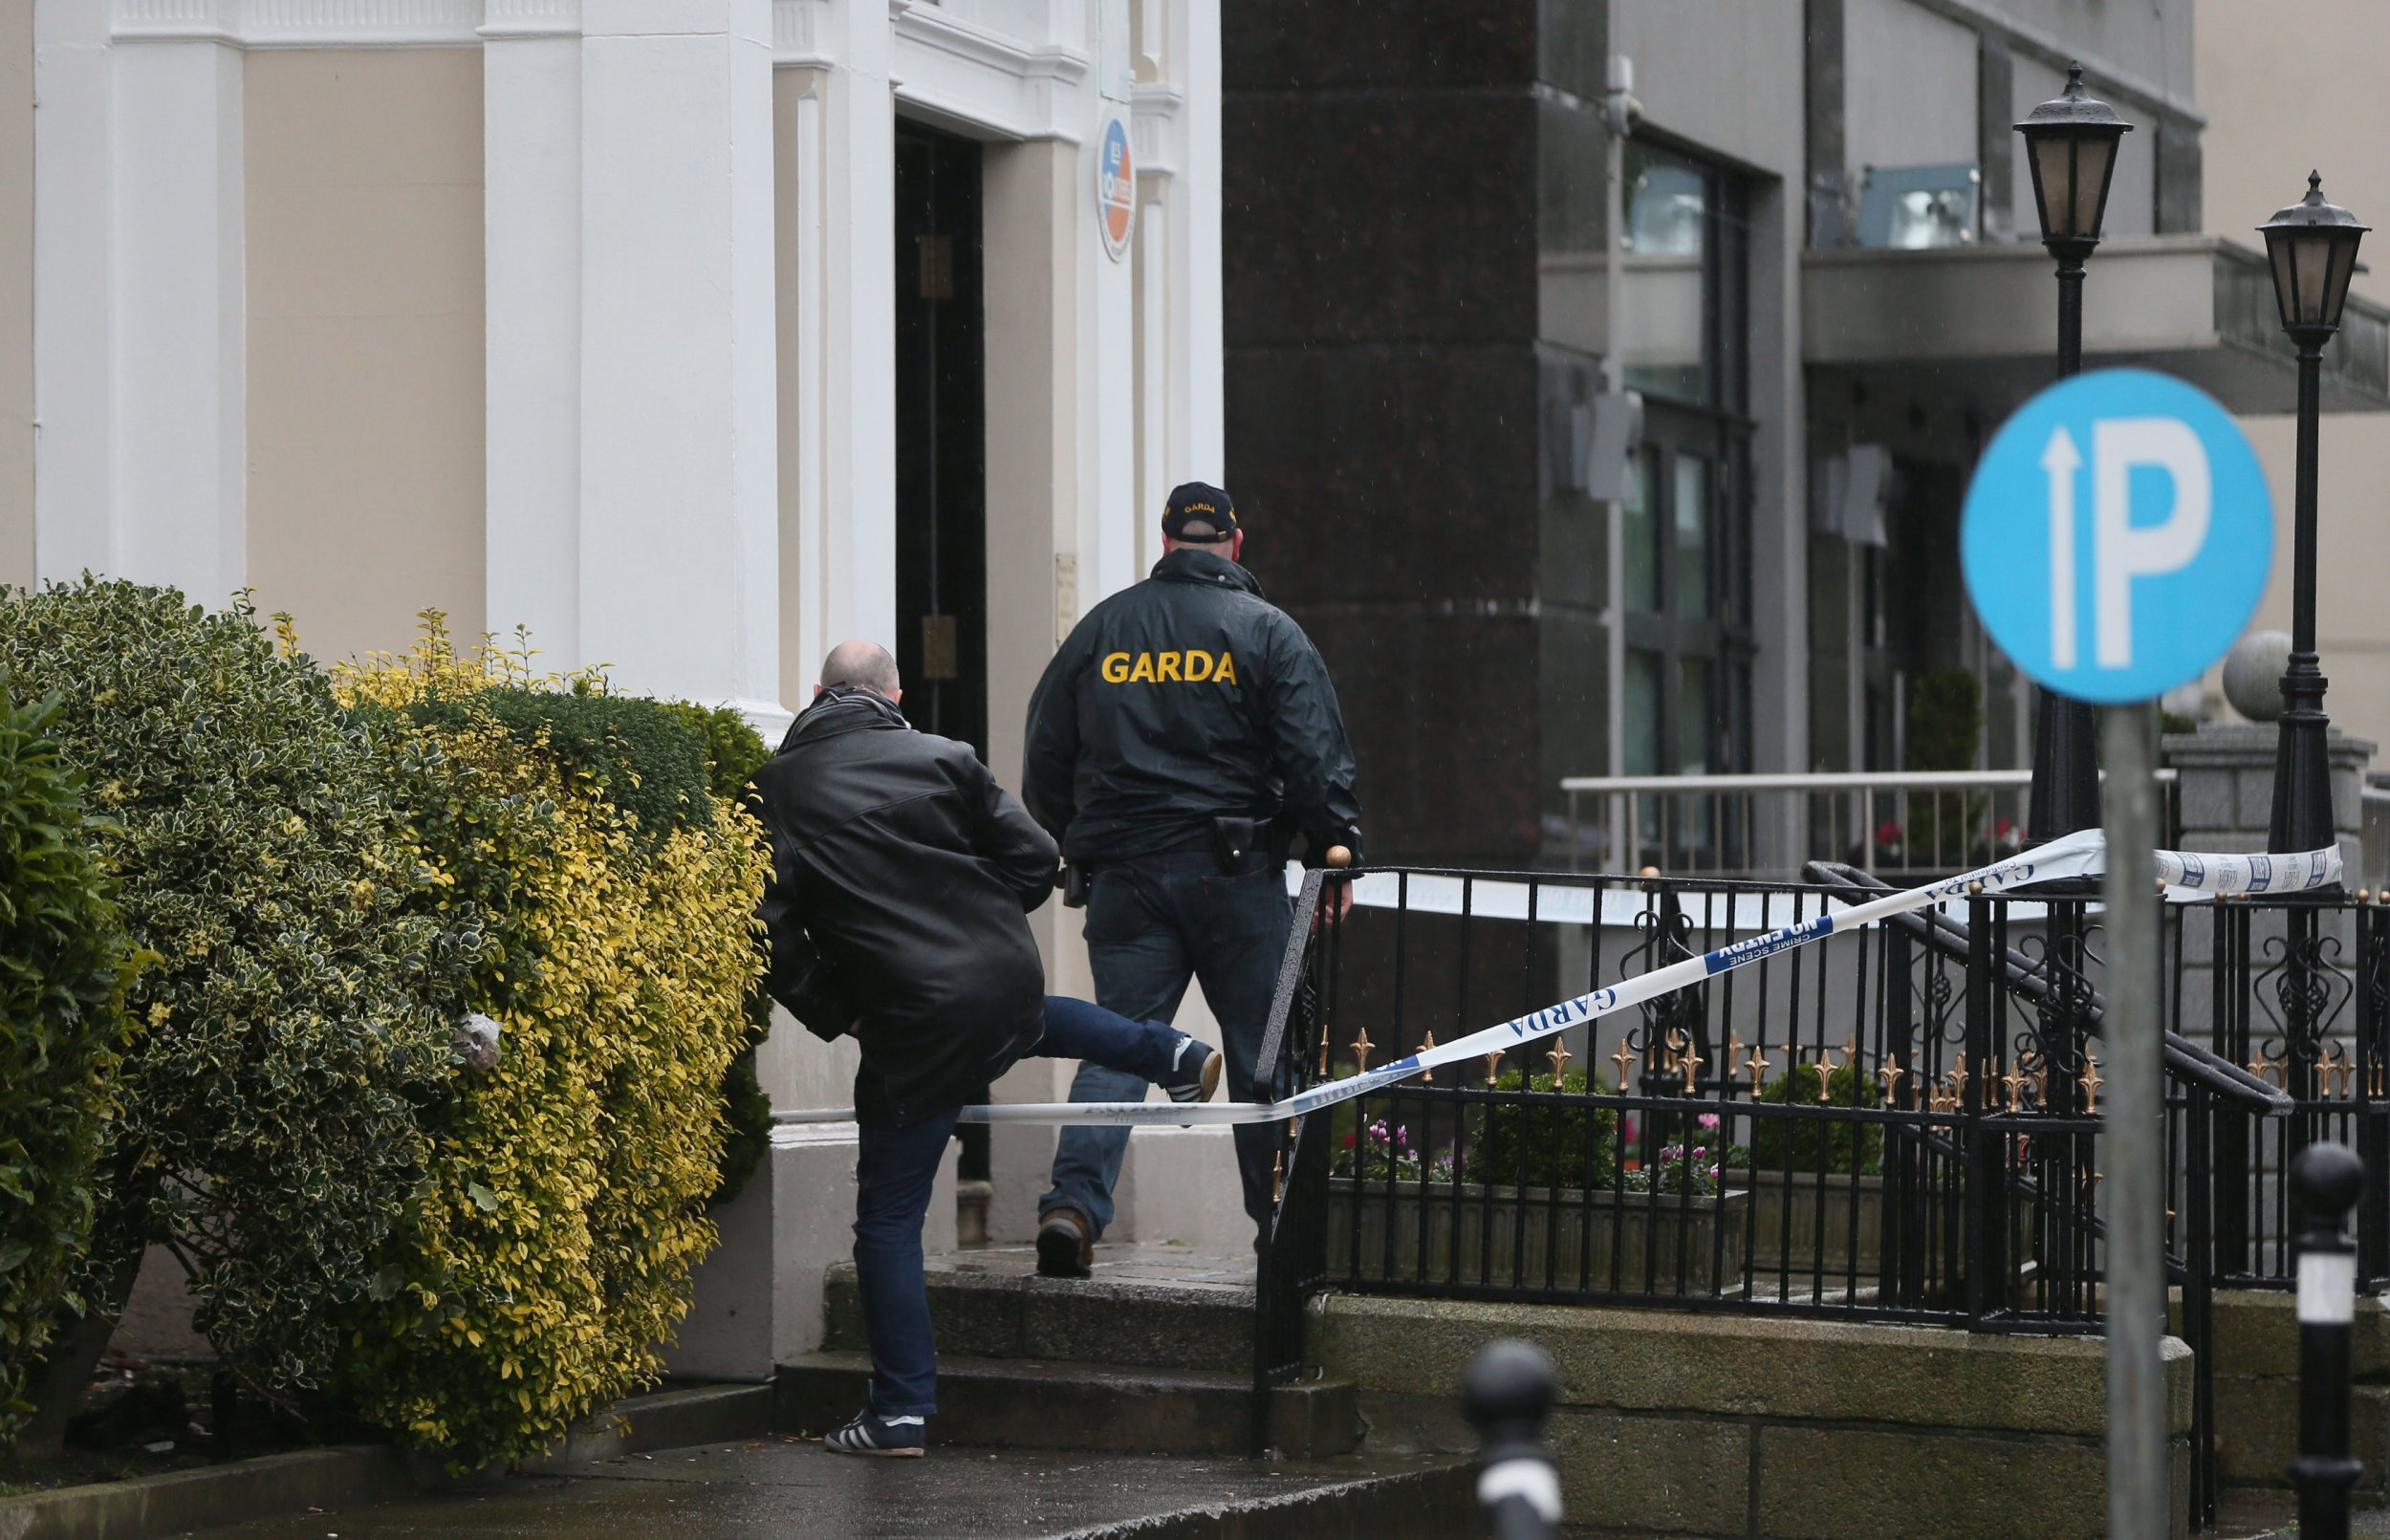 Gardai outside the Regency Hotel in Dublin after one man died and two others were injured following a shooting incident at the hotel. PRESS ASSOCIATION Photo. Picture date: Friday February 5, 2016. The attack happened while a boxing tournament weigh-in was going on at the hotel on Swords Road, around three kilometres north of the city centre. See PA story POLICE Shooting. Photo credit should read: Niall Carson/PA Wire